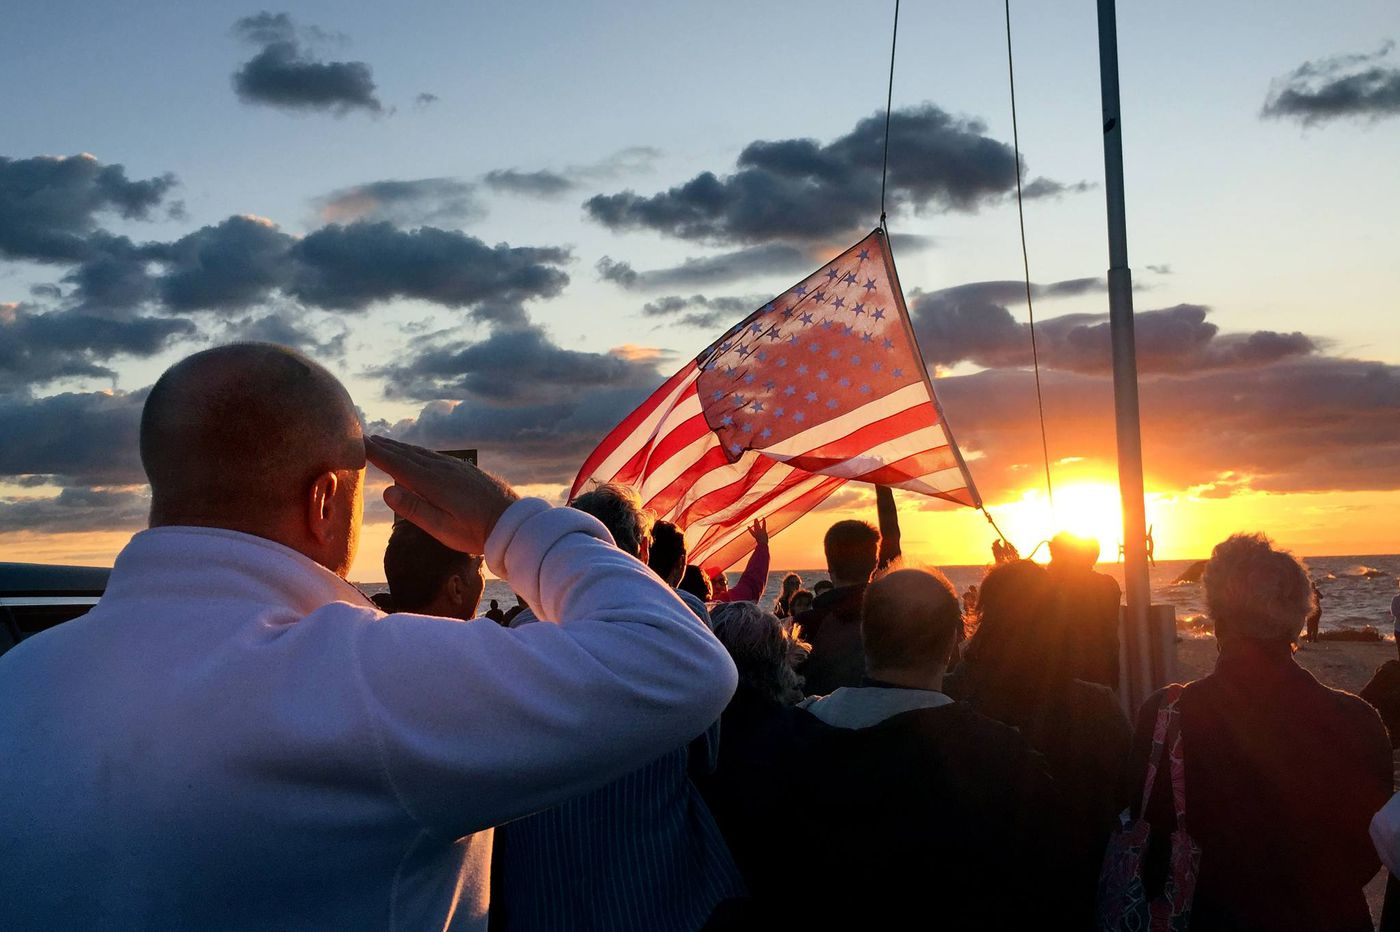 Kate Smith will sing on at Sunset Beach flag ritual in Cape May Point, family says